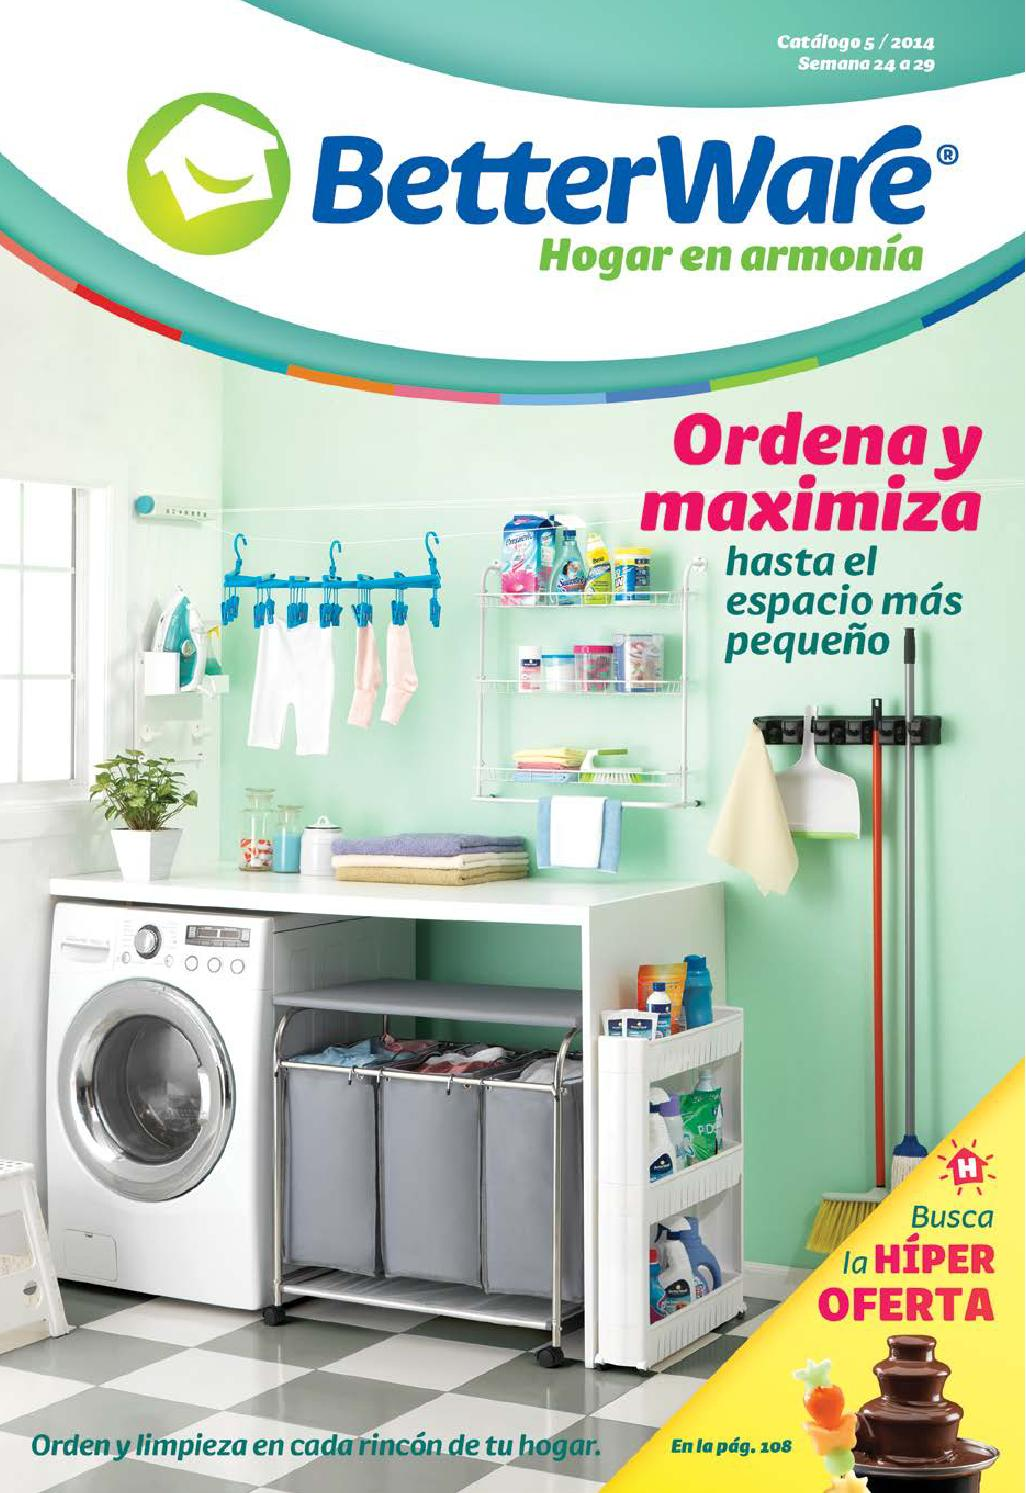 Betterware catalogo 5 by betterware cuernavaca morelos issuu - Www latiendaencasa es catalogo ...